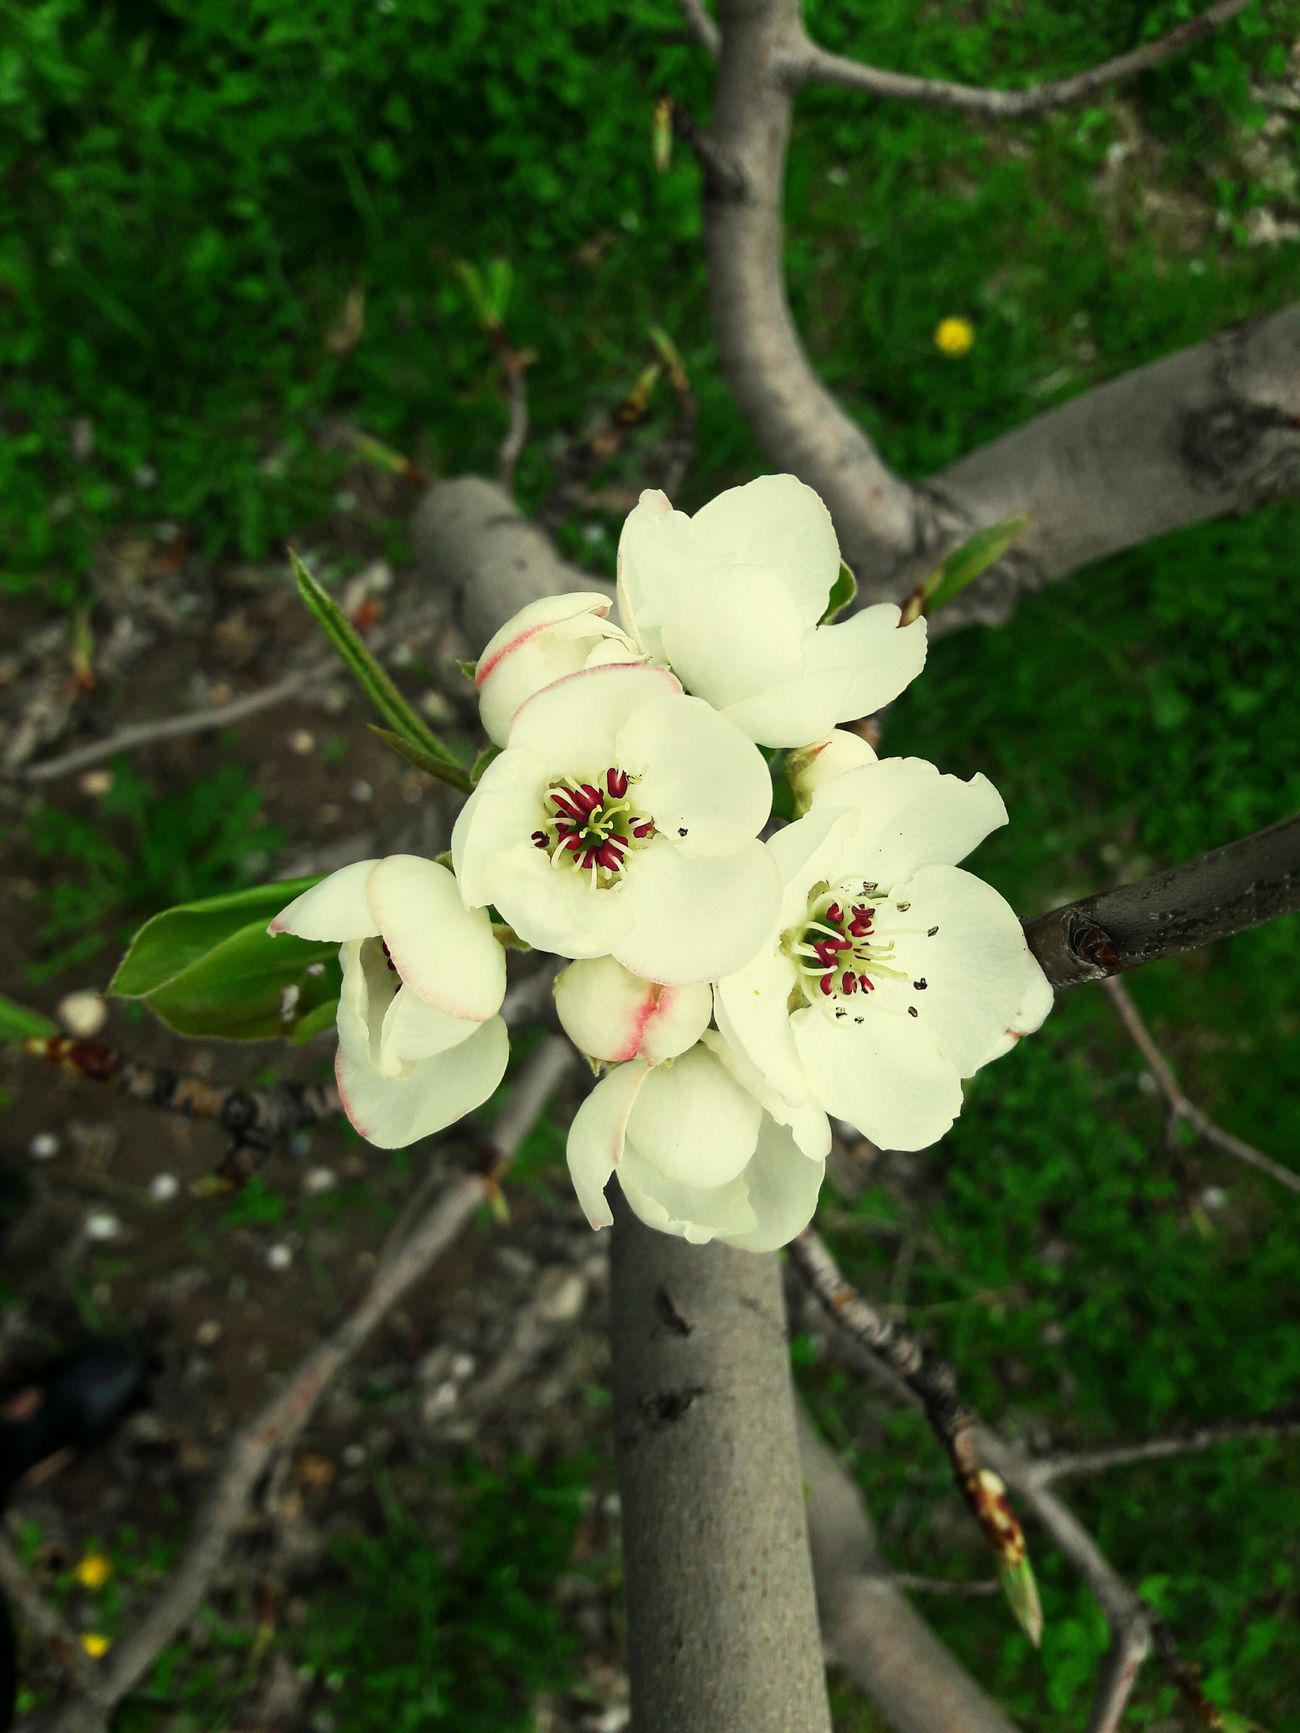 Armenia Flower White Color Nature Blossom Close-up Springtime Outdoors Beauty In Nature No People Day Flower Head Plant Tree Growth Branch Fragility Freshness Apricot Tree